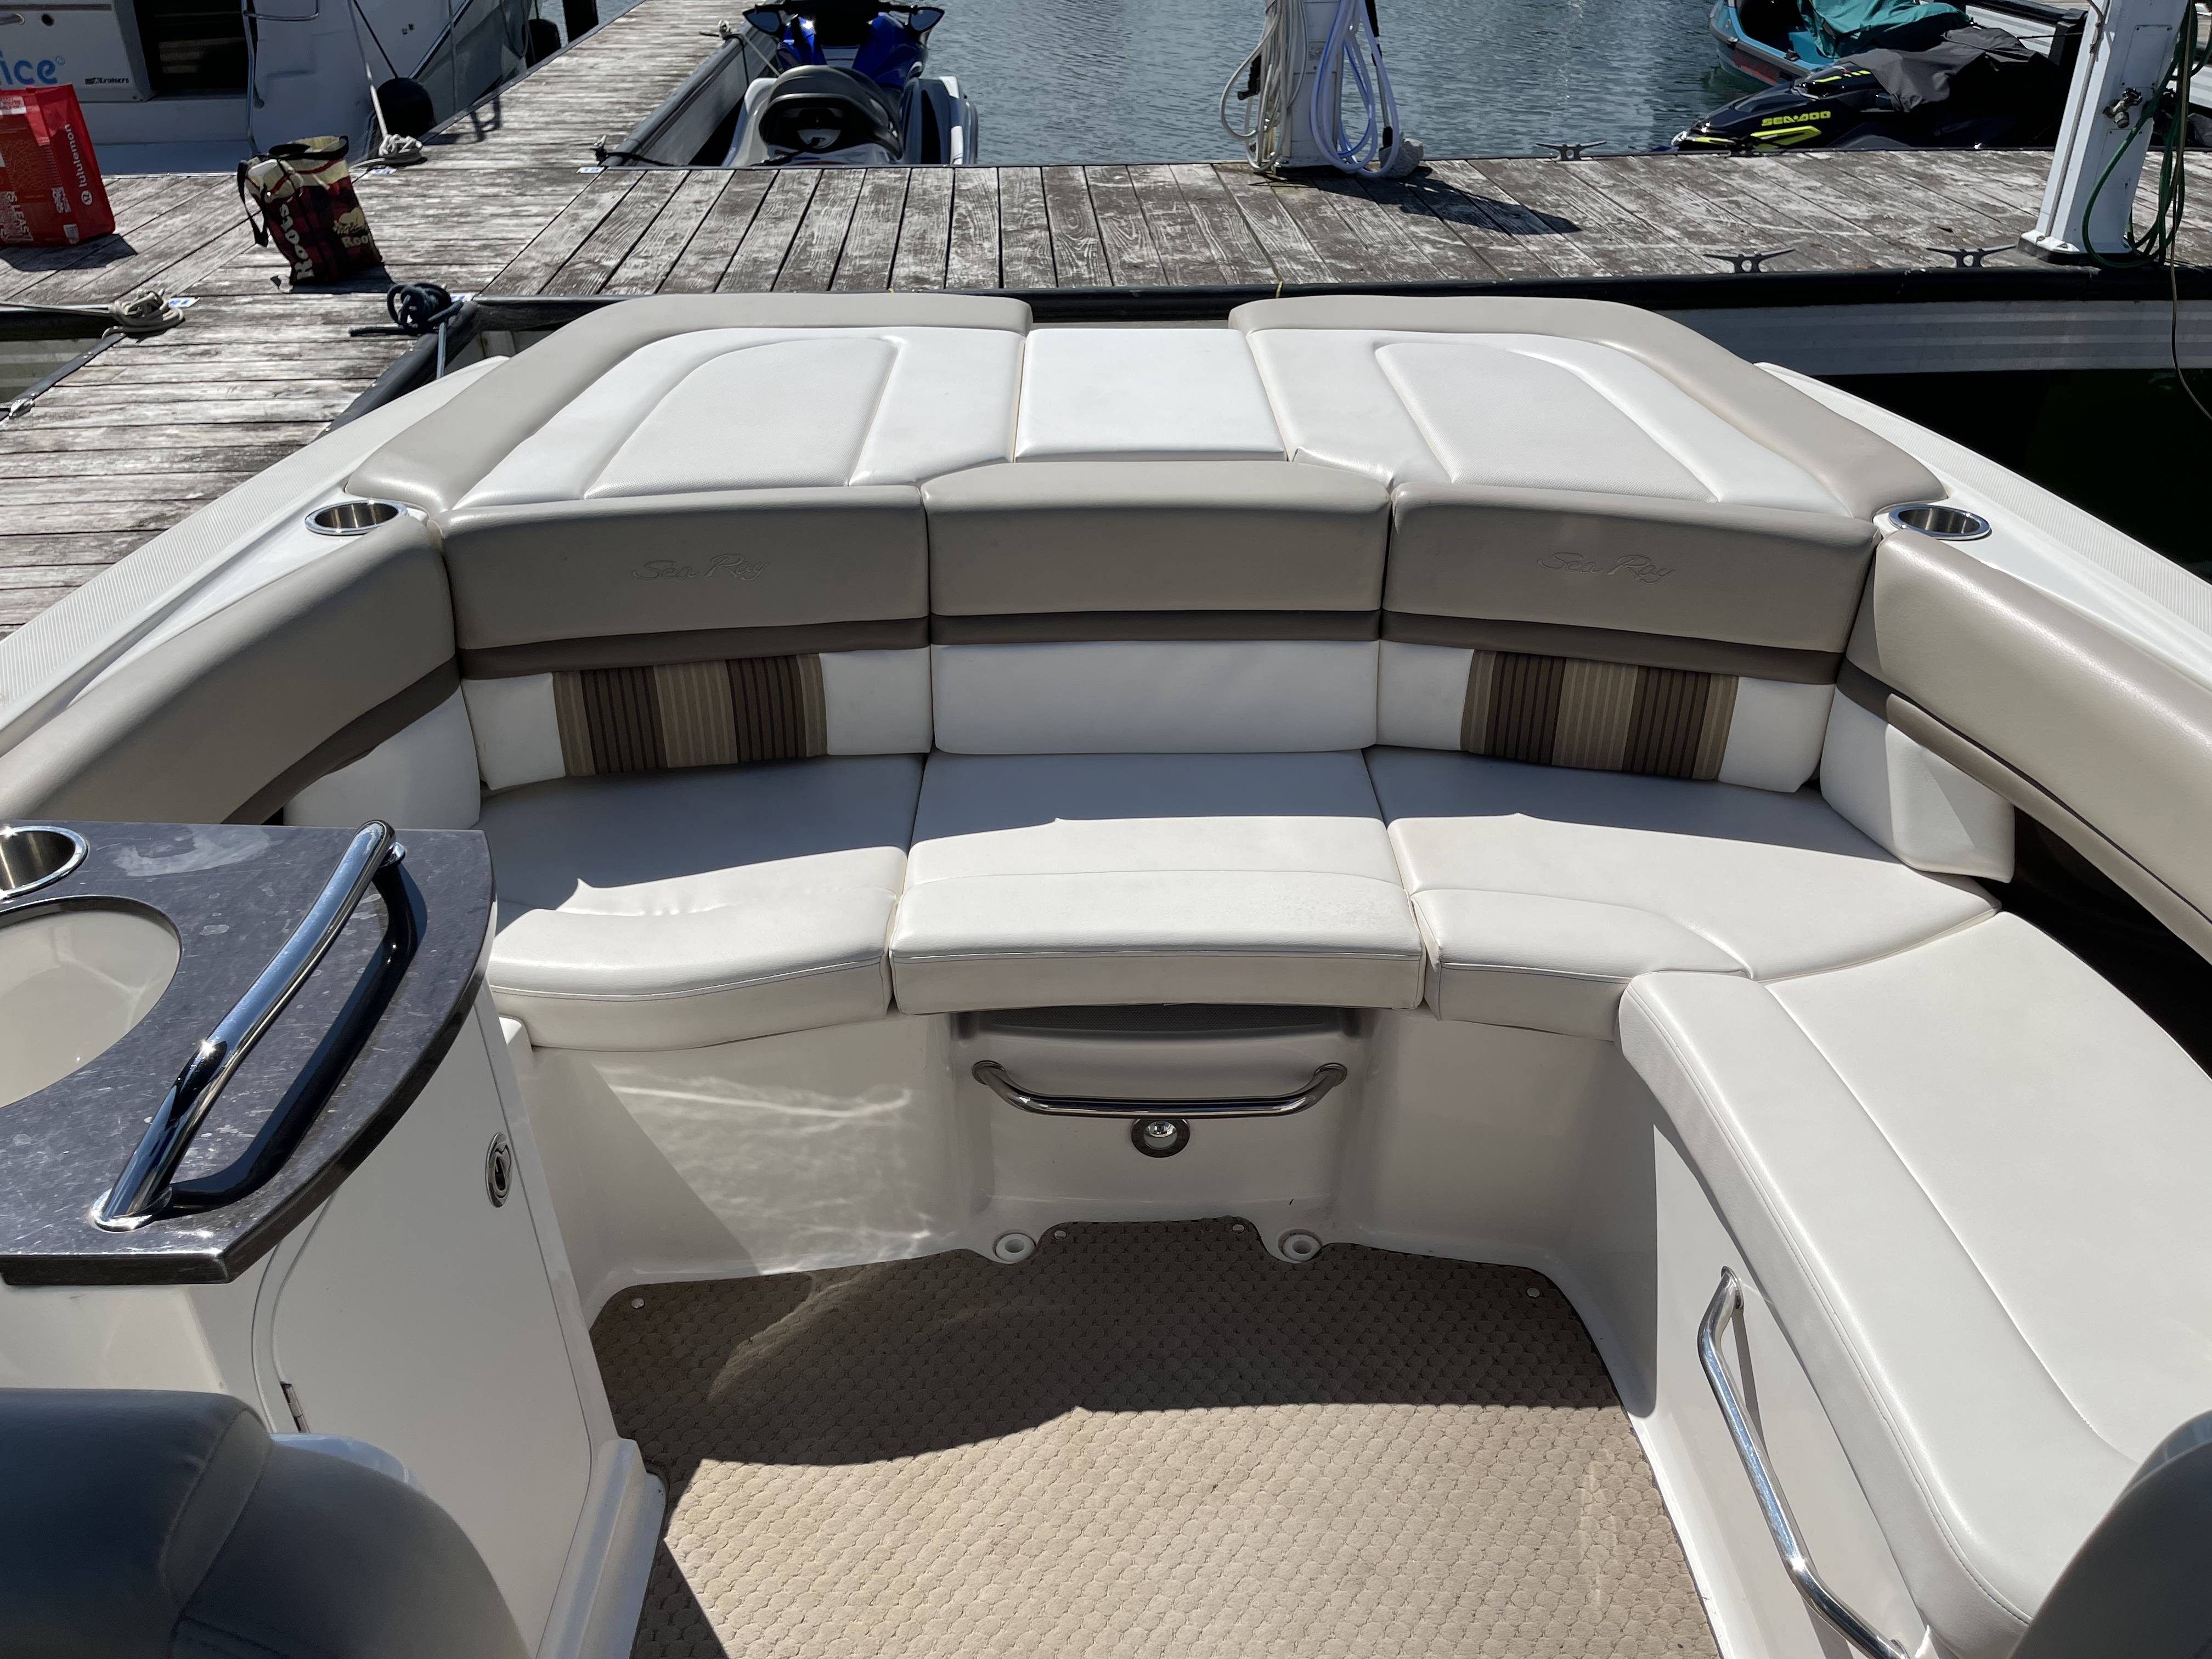 2012 Sea Ray boat for sale, model of the boat is 250 SLX & Image # 16 of 35